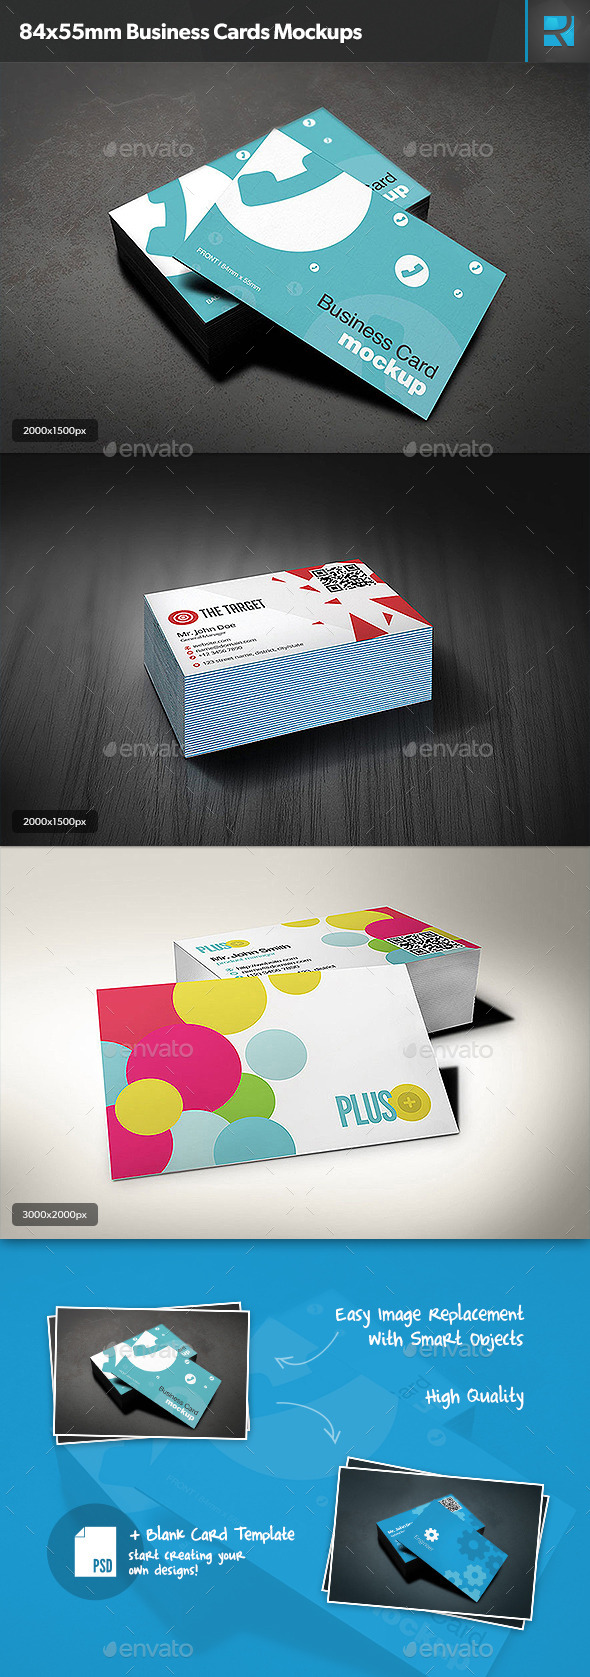 84x55mm Business Cards Mockups - Business Cards Print